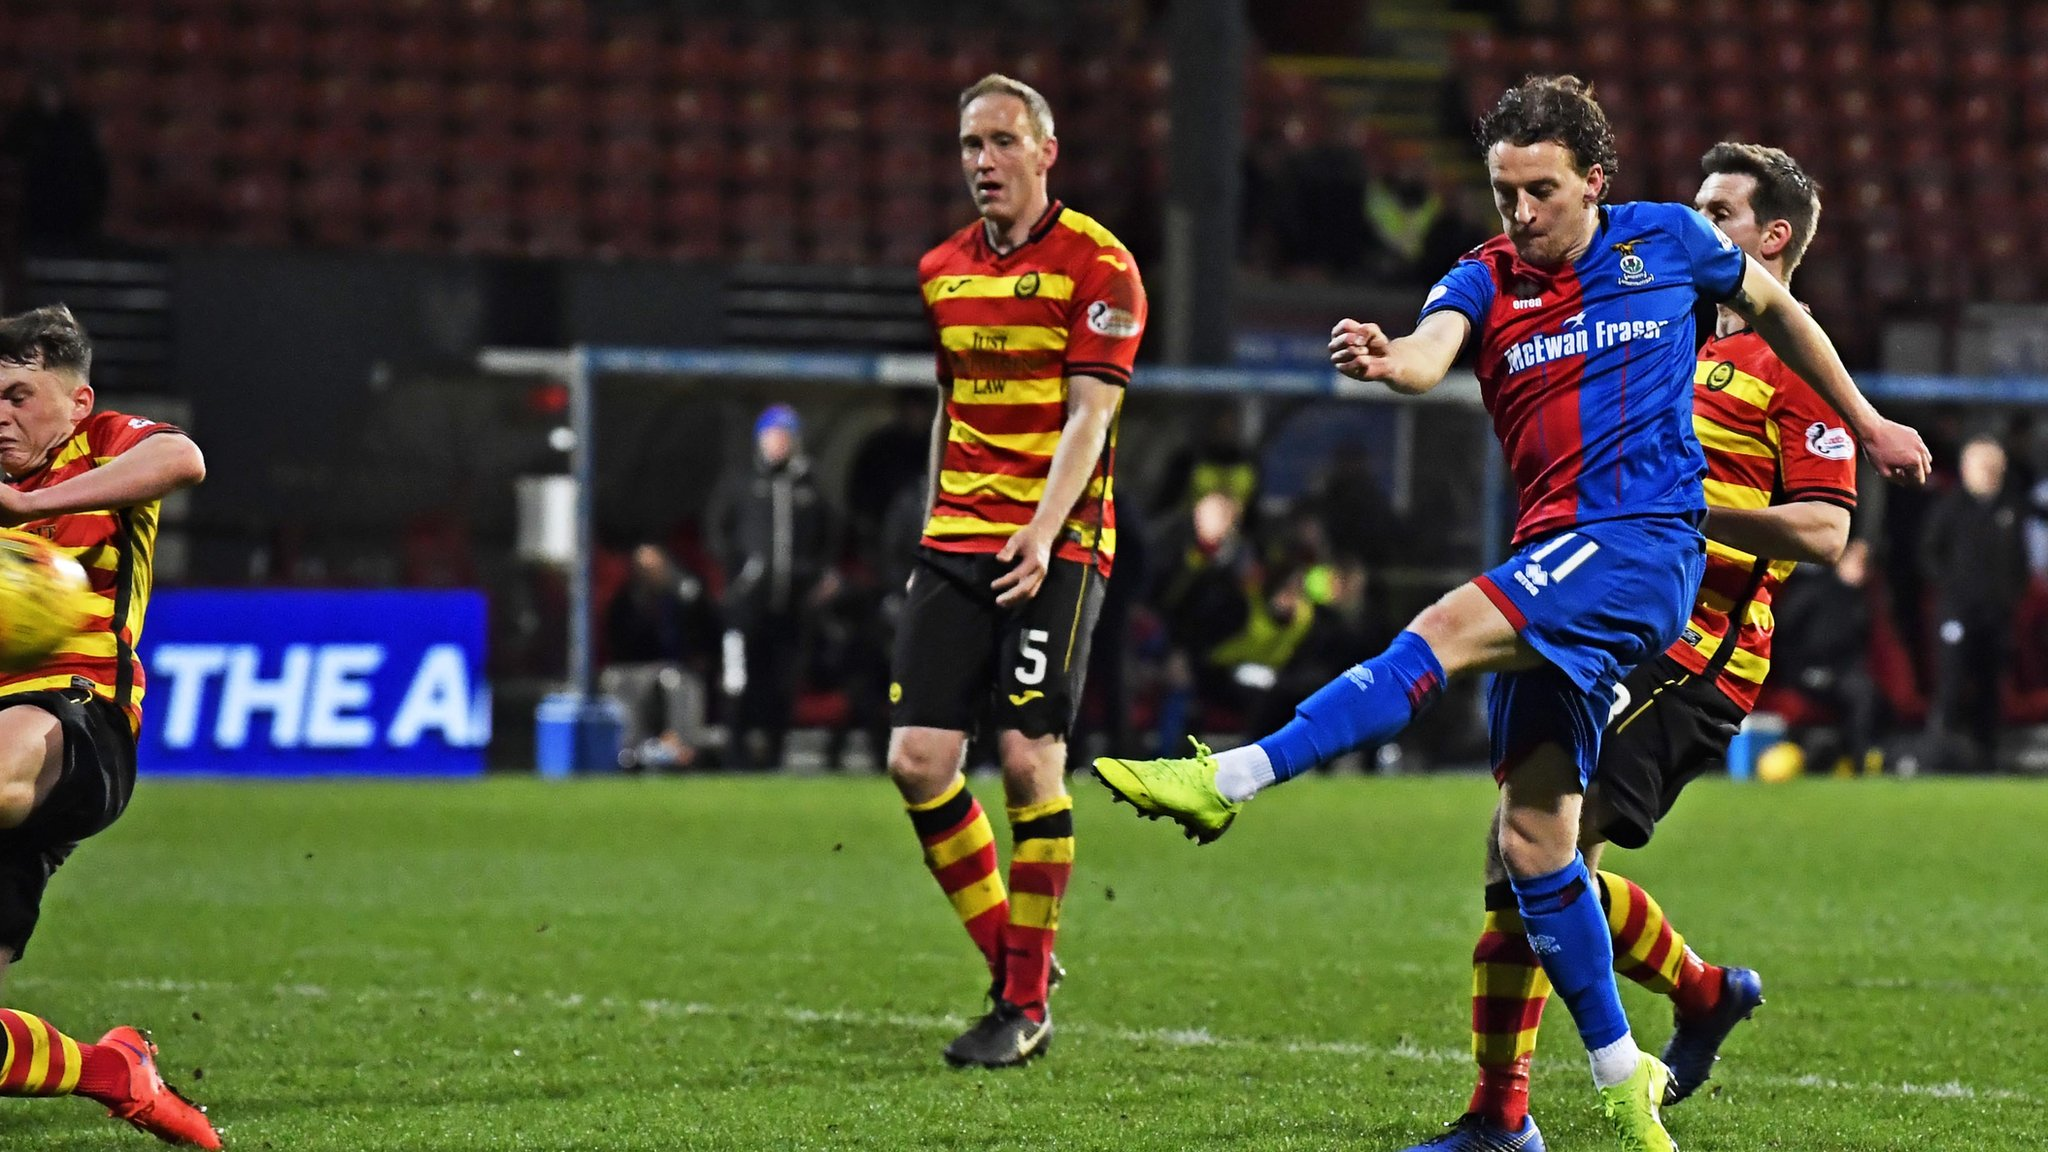 Inverness' Tom Walsh volleys home terrific winner against Partick Thistle